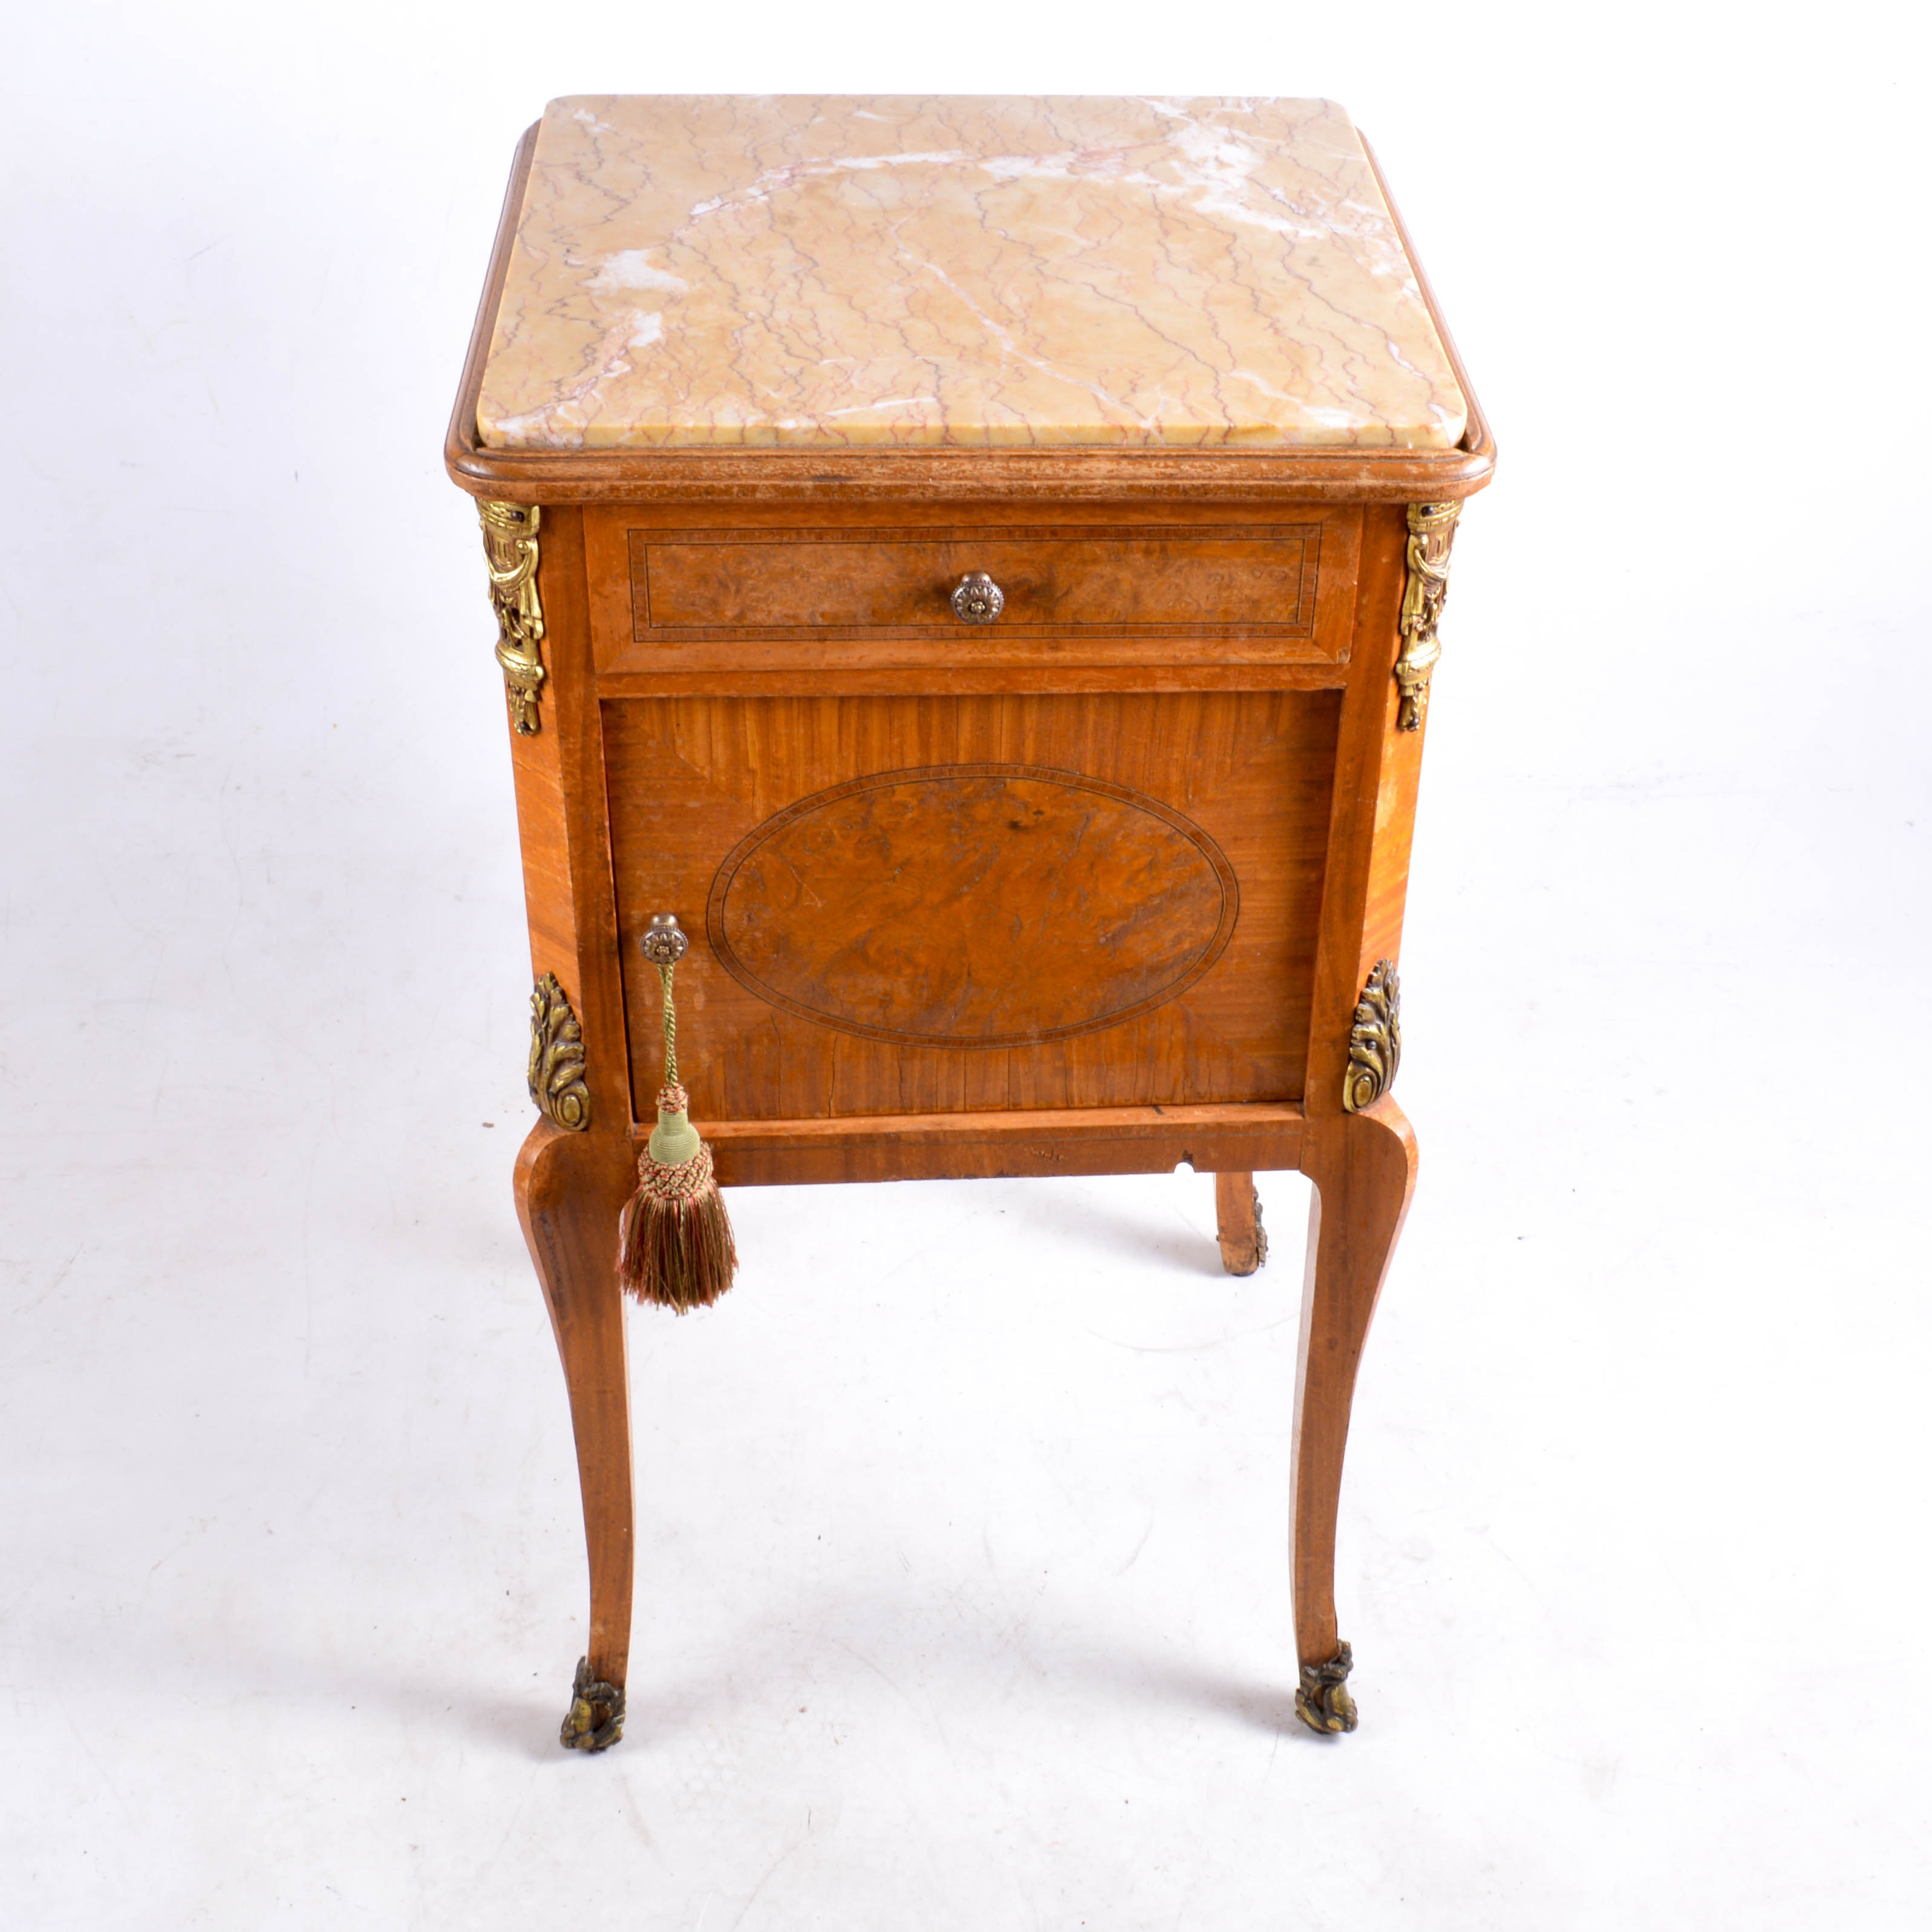 Antique Marble Top Humidor Stand with Parquetry